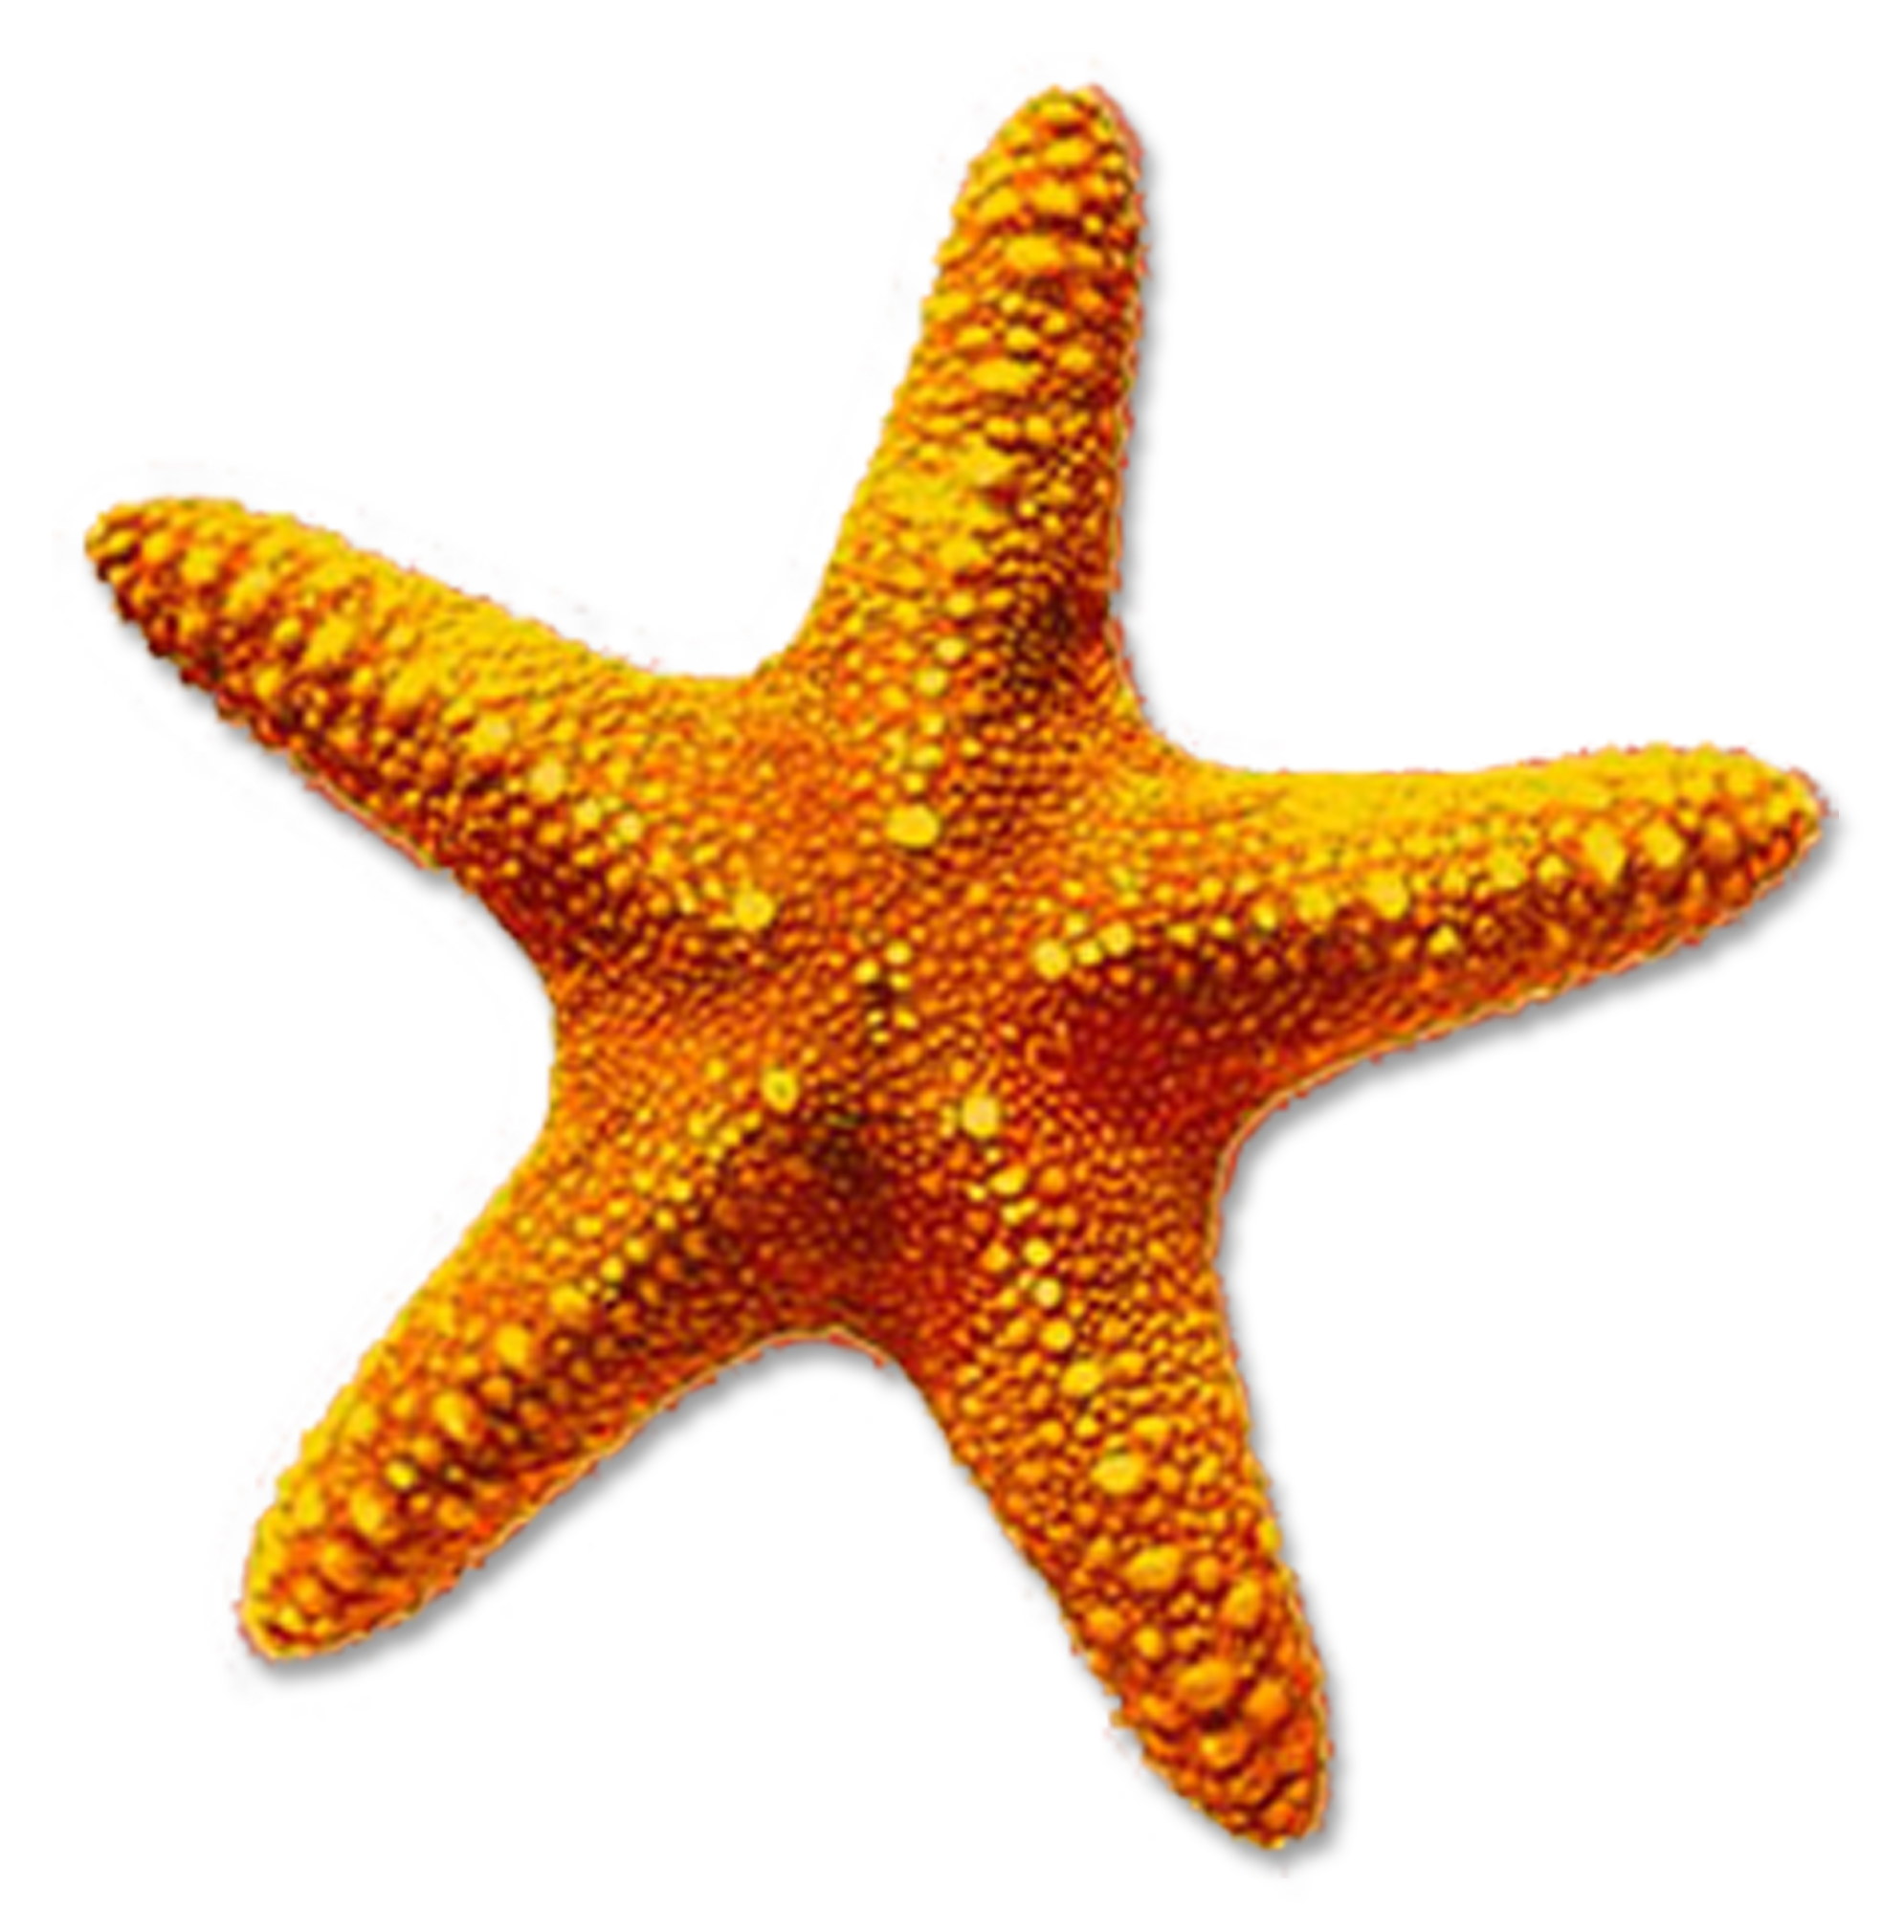 starfish png 19879 free icons and png backgrounds